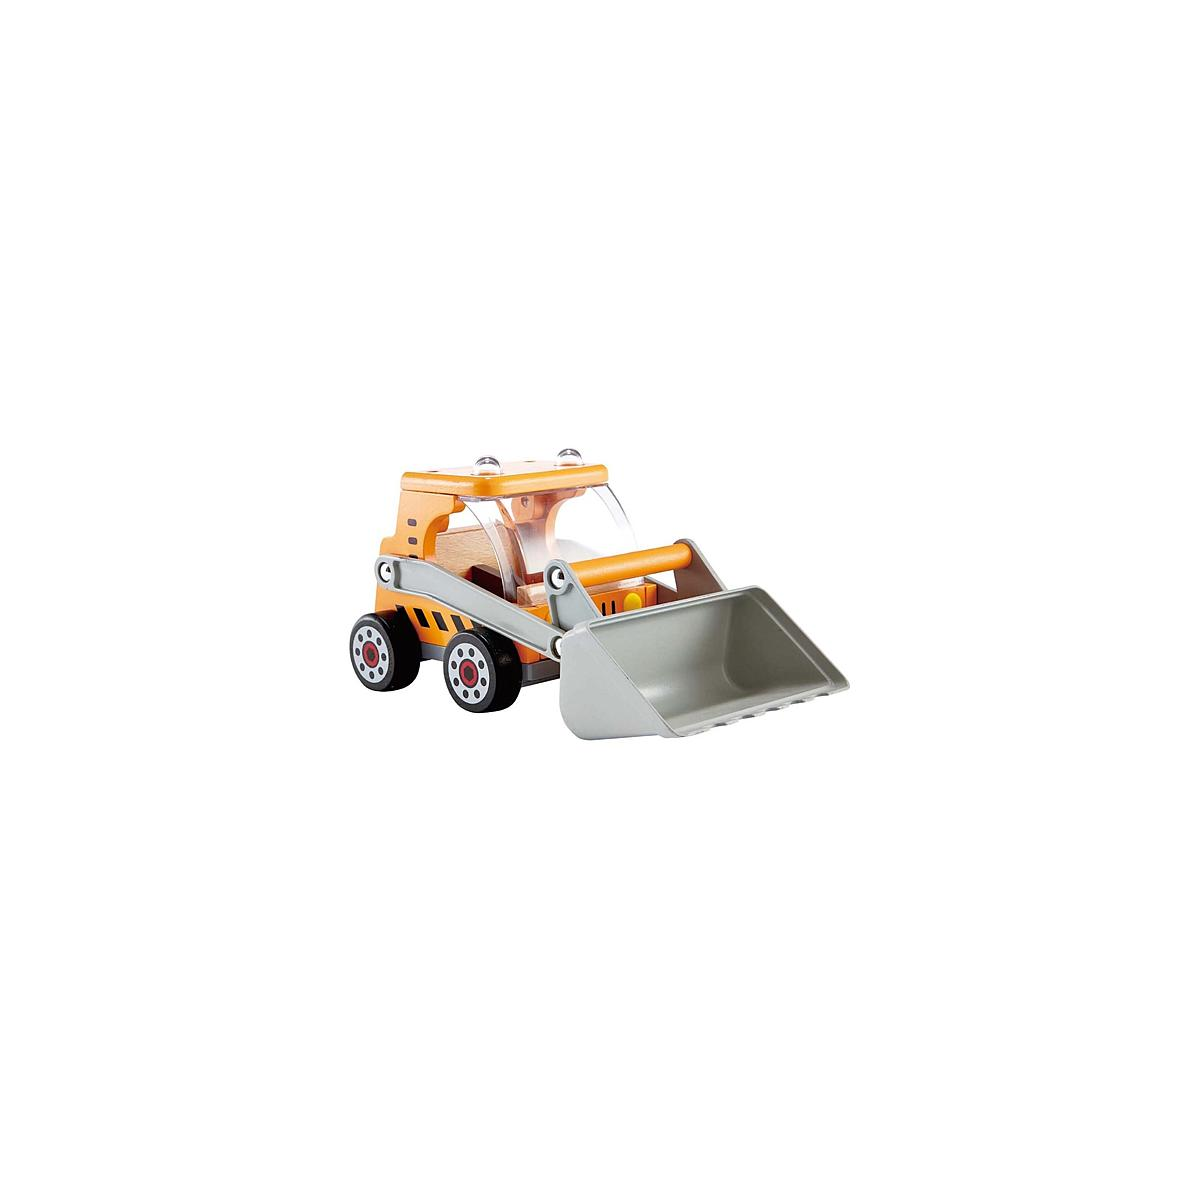 GREAT BIG DIGGER by Hape Pelleteuse en bois